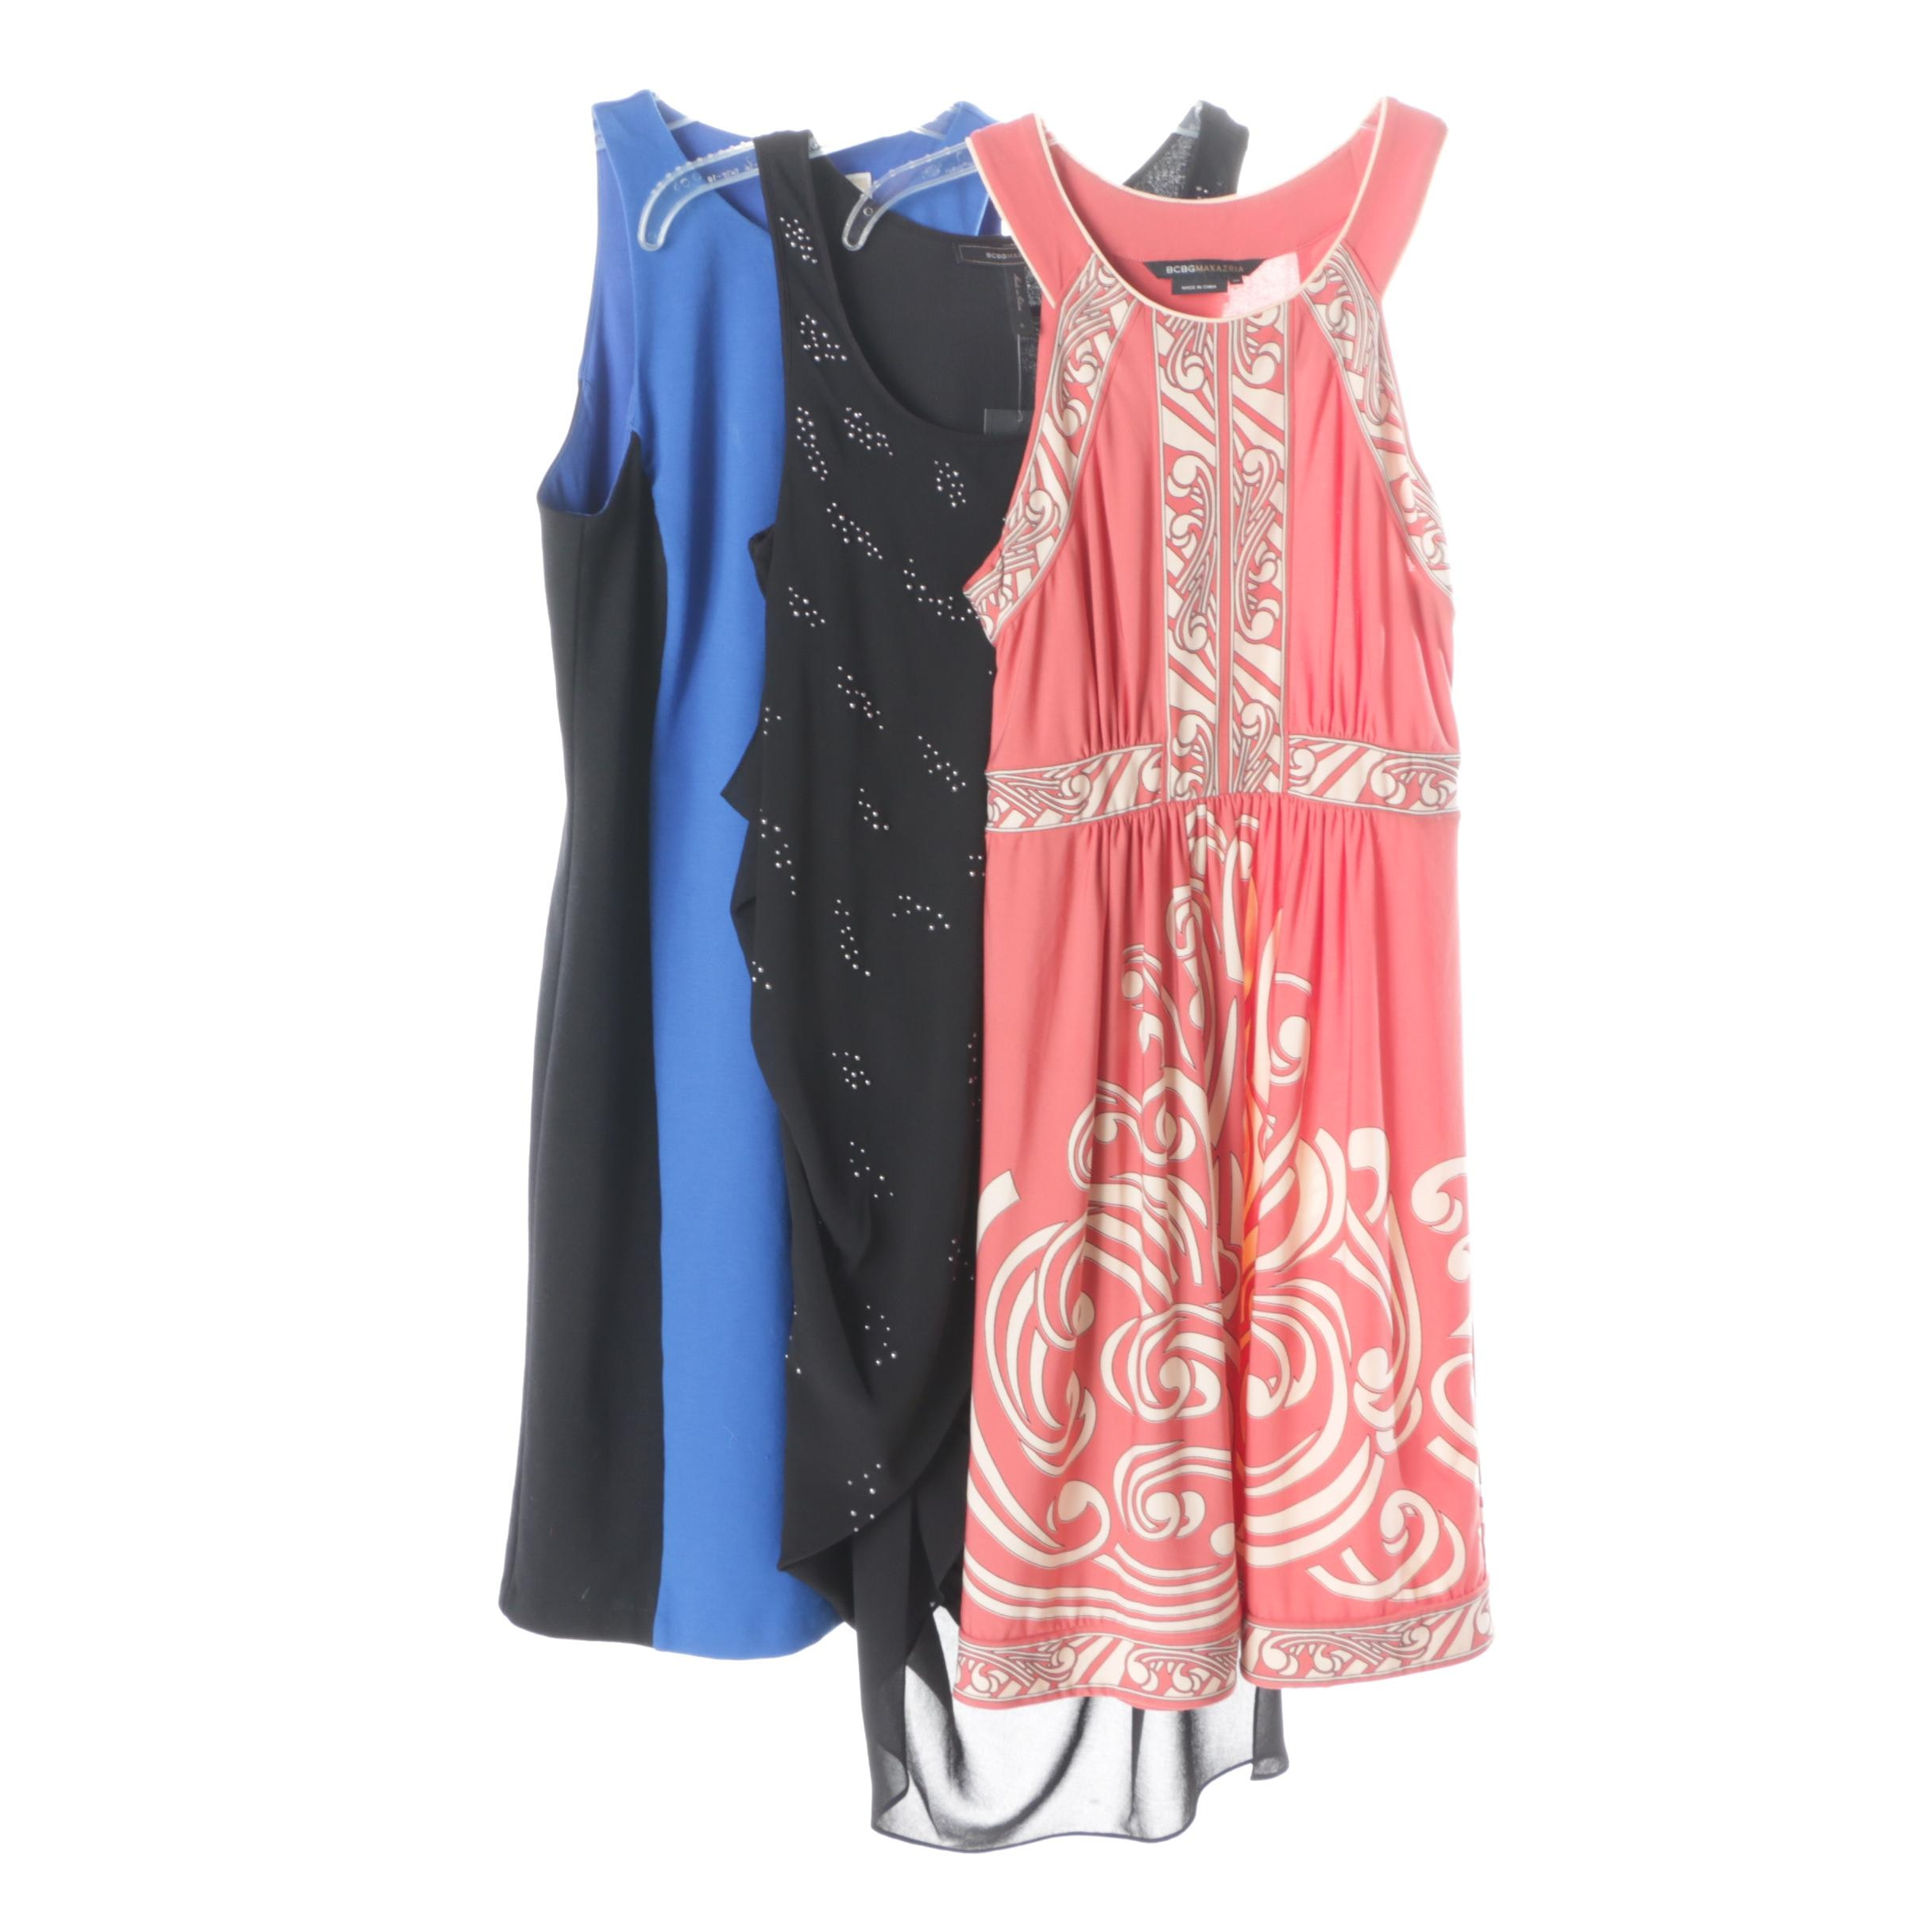 BCBG Max Azria and MICHAEL Michael Kors Dresses